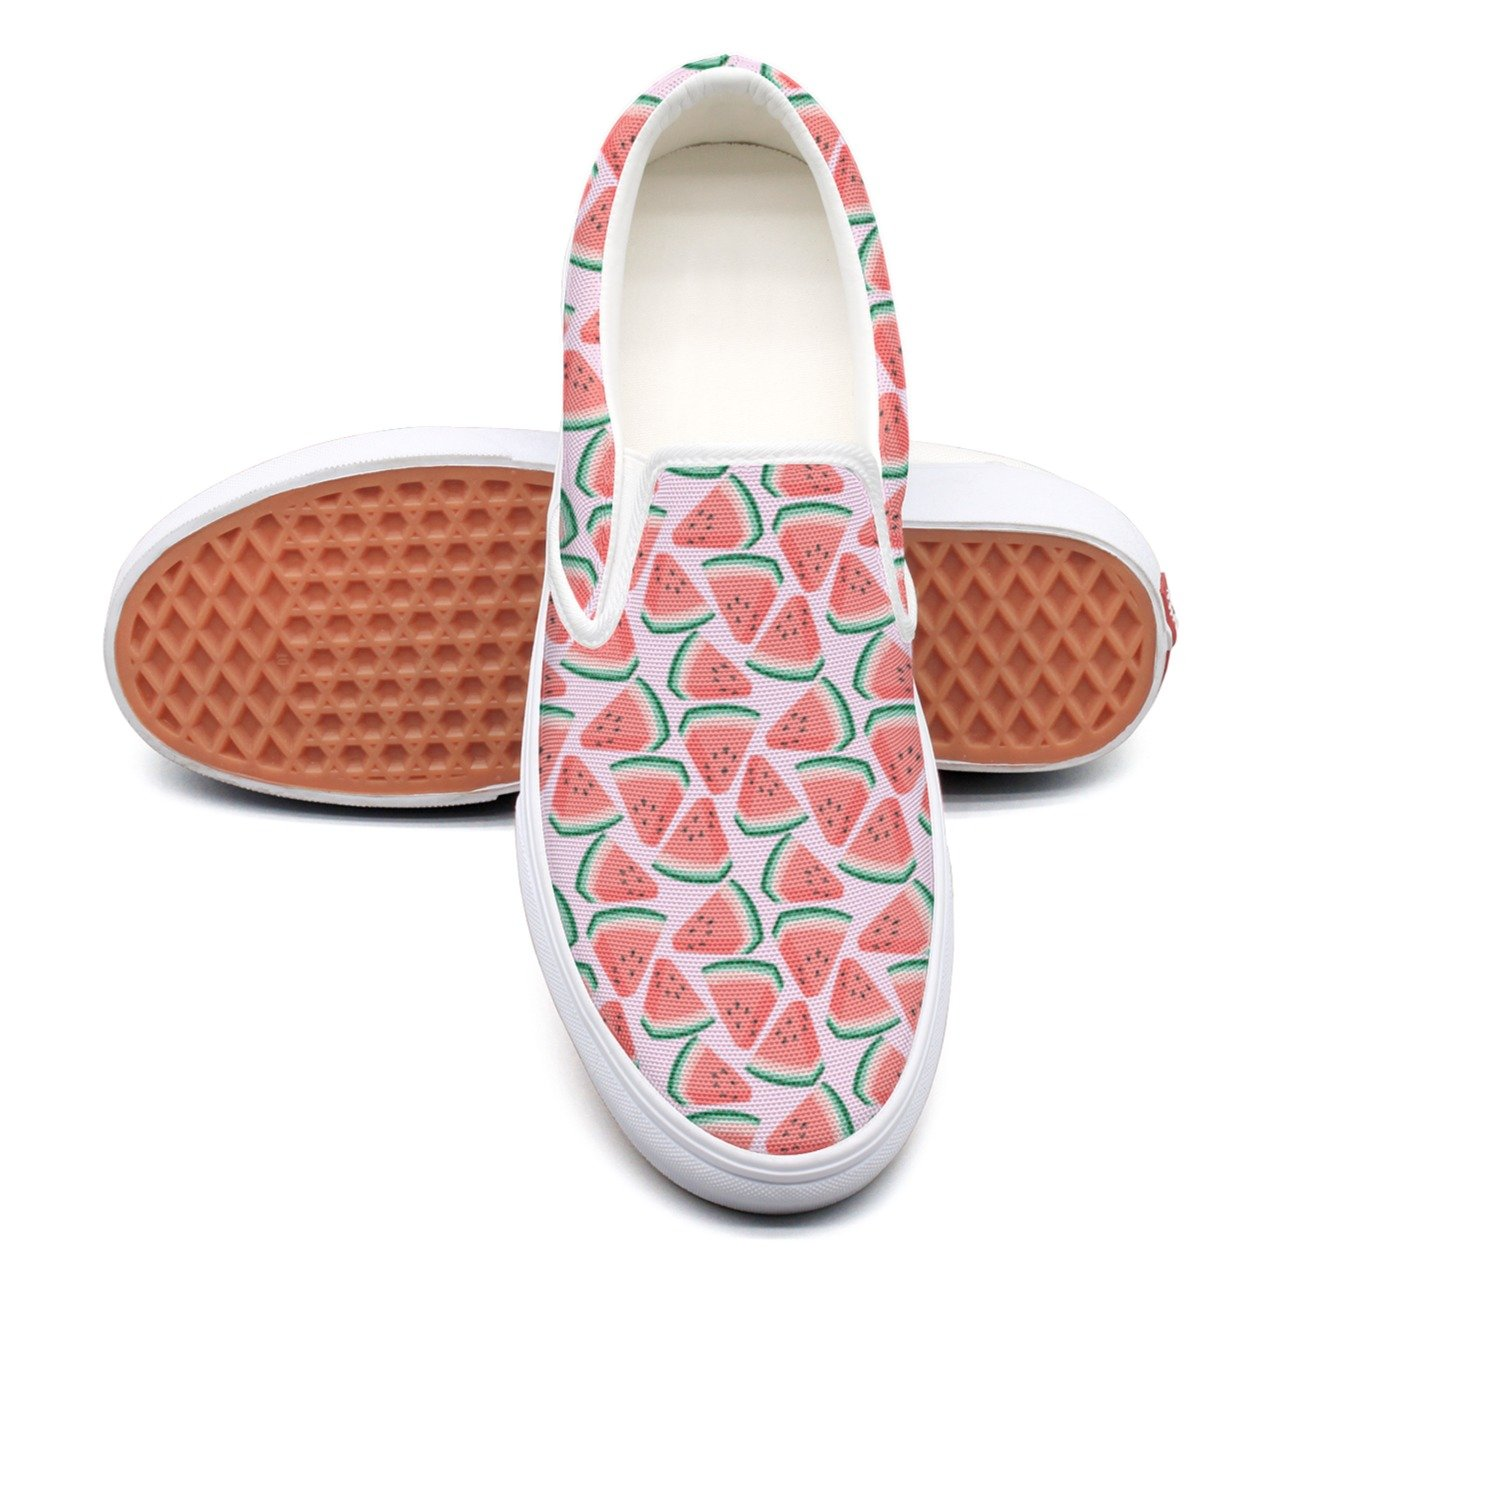 Fashion Womens Red Watermelon Designer Athletic Canvas Casual Shoes Sneakers